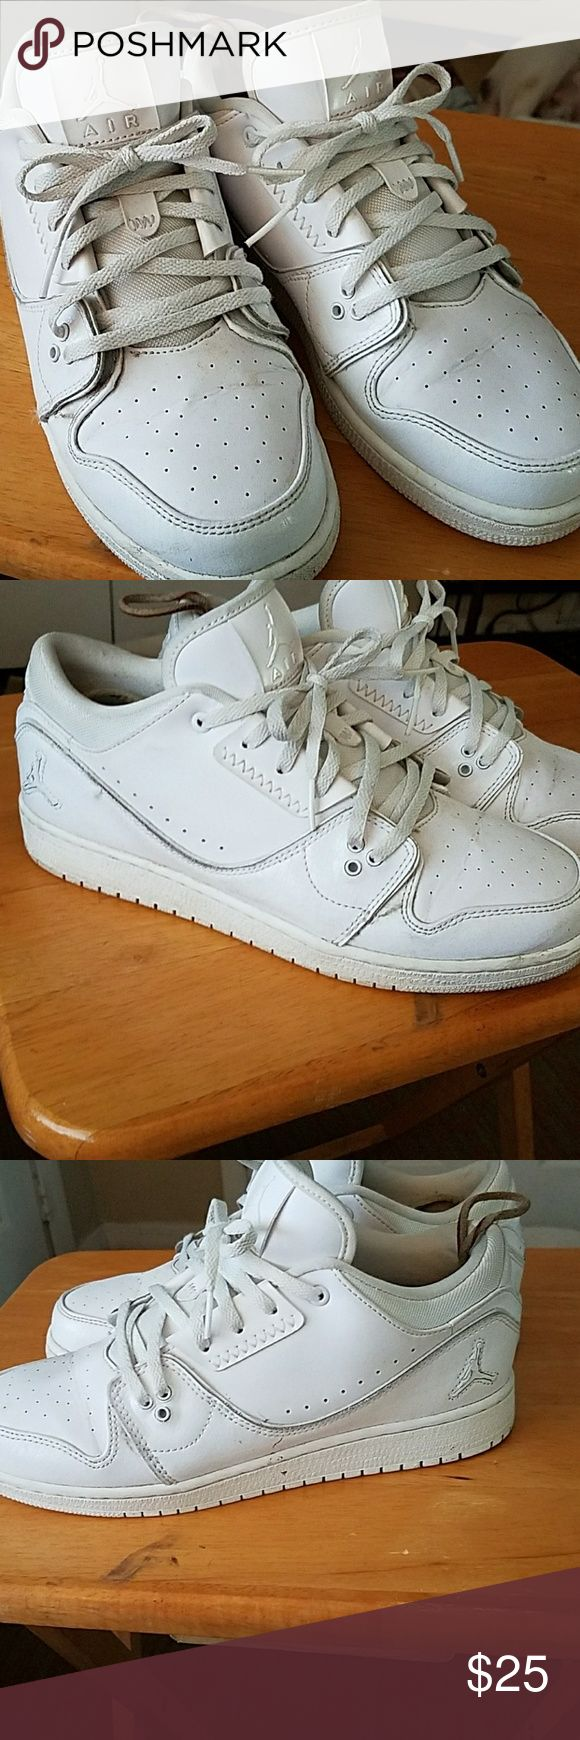 Nike Jordan's mid cut size 7Y or 9 in womans Nike Jordan low cuts, in good condition these were worn by my wife when she was doing low impact outdoor workouts. Please no low ball offers. Nike Shoes Sneakers